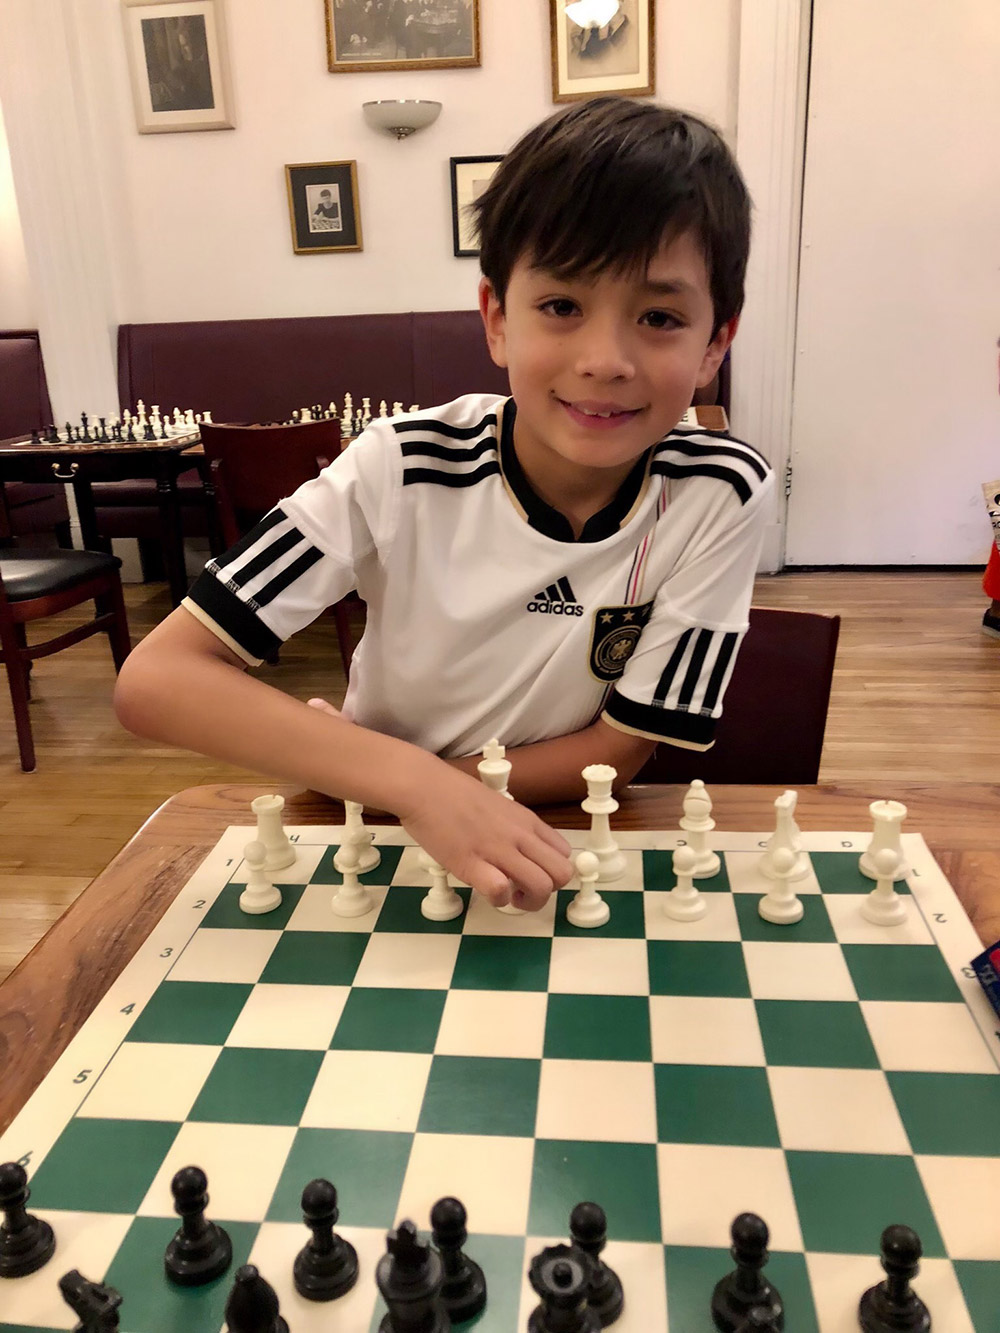 Oliver gets ready for some chess at the legendary Marshall Chess Club in New York City's Greenwich Village. May, 2018